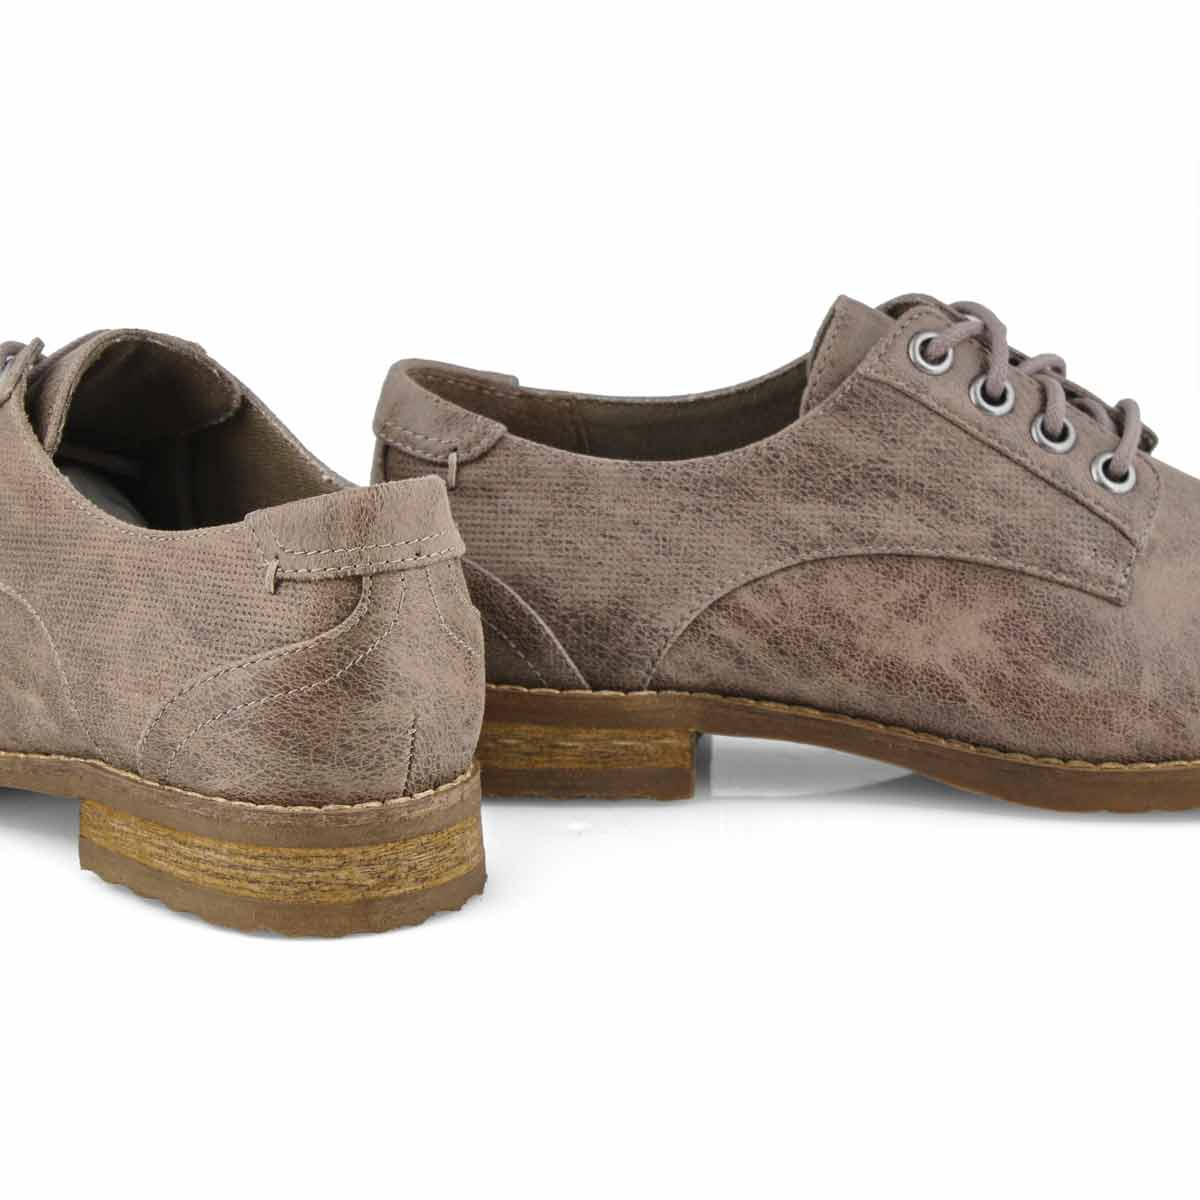 Lds Meghan taupe lace up oxford